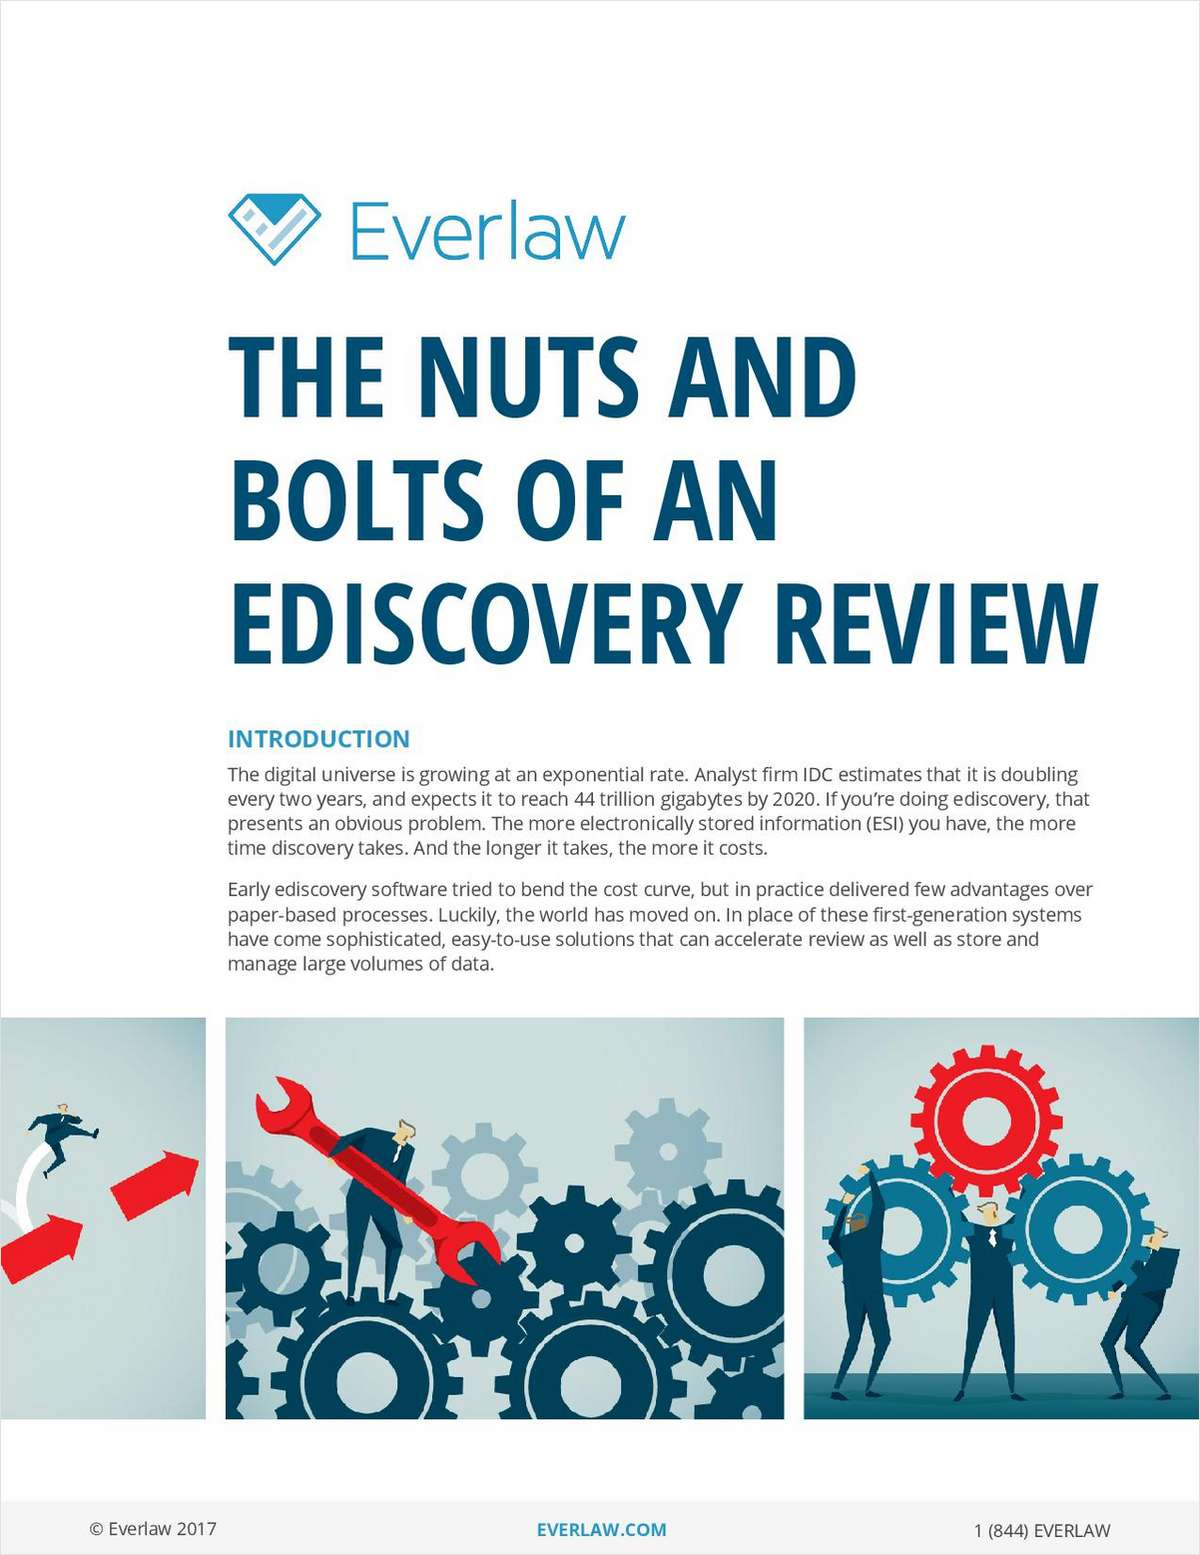 The Nuts and Bolts of an Ediscovery Review